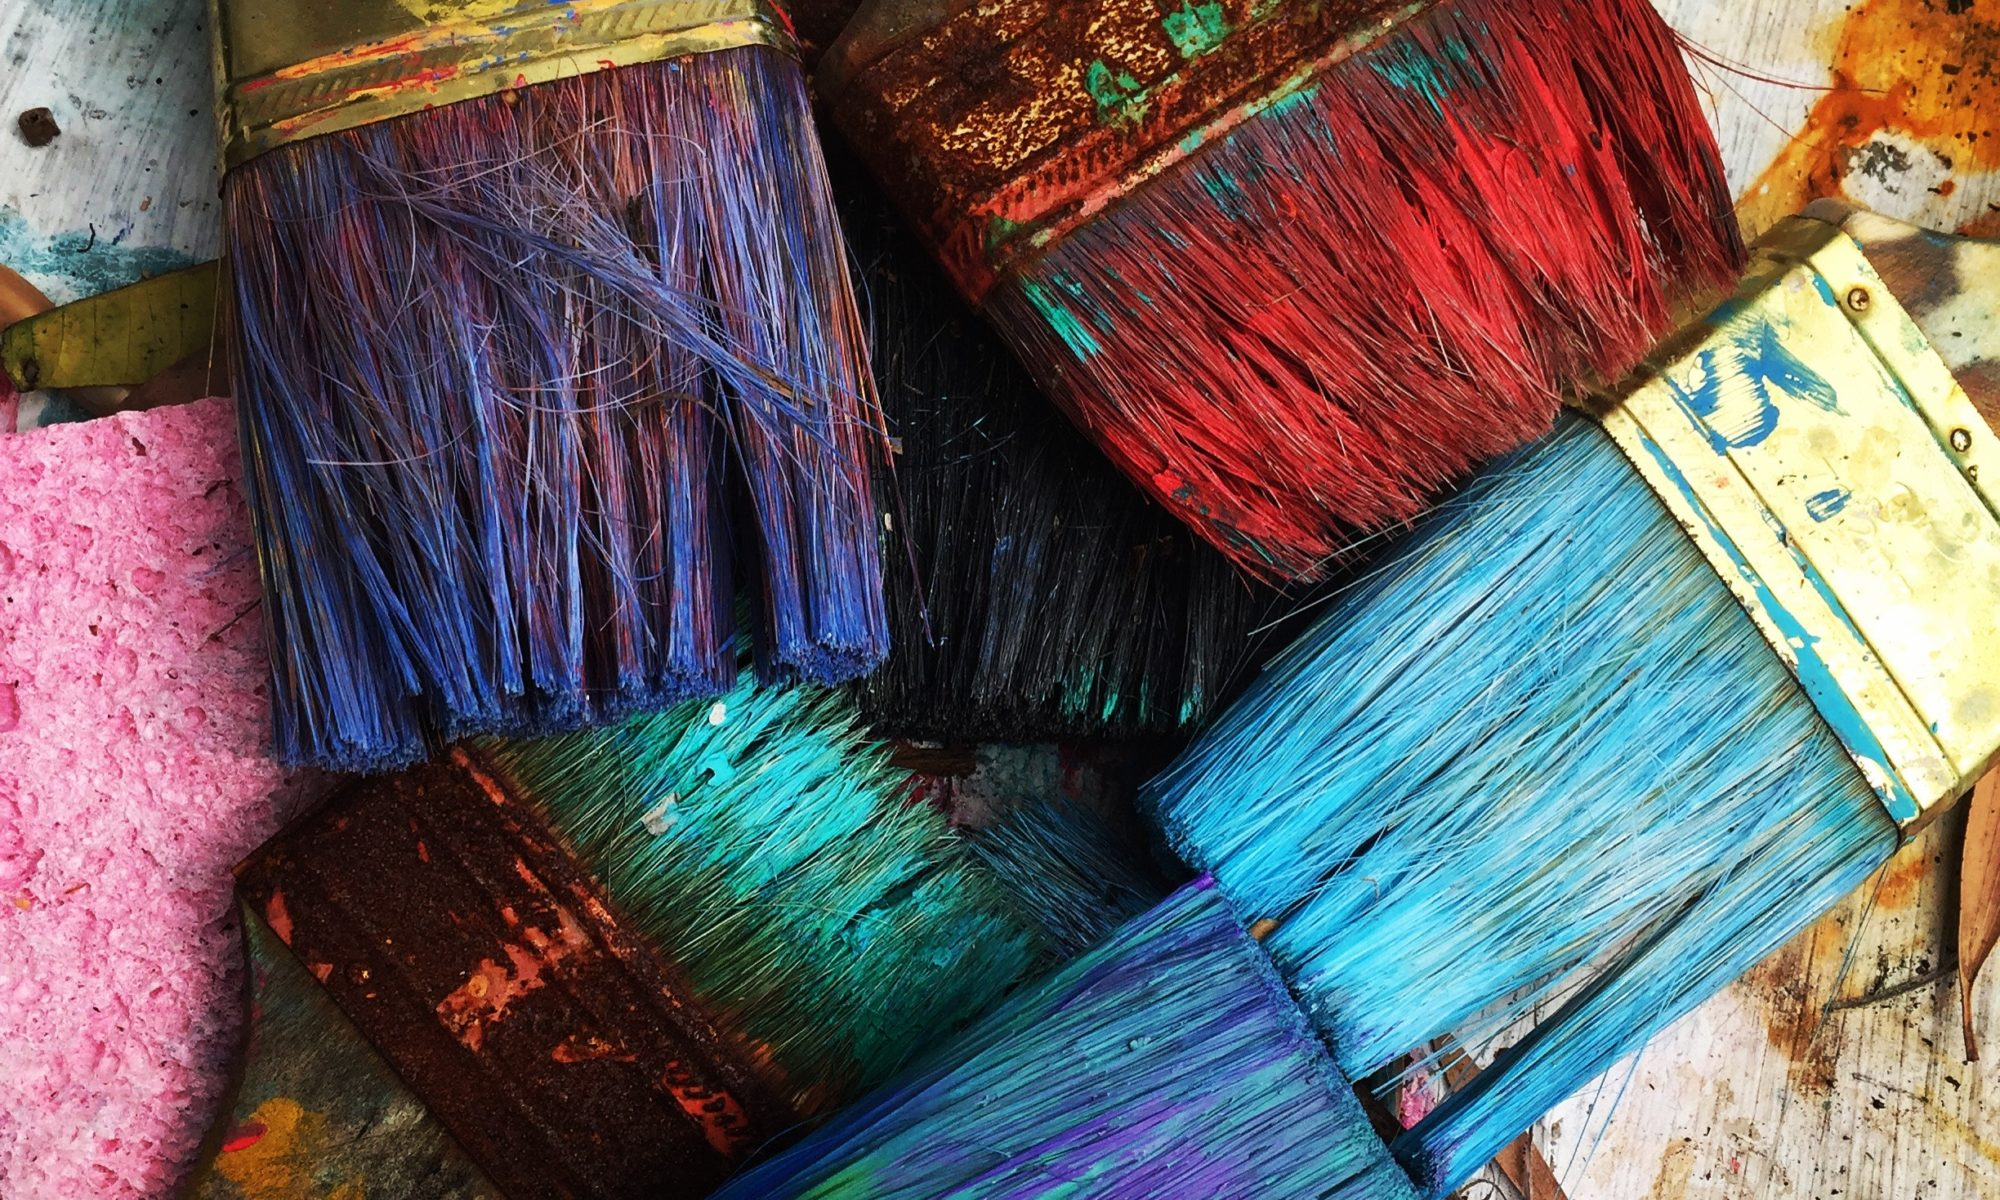 several paintbrushes dipped in different brightly colored paint